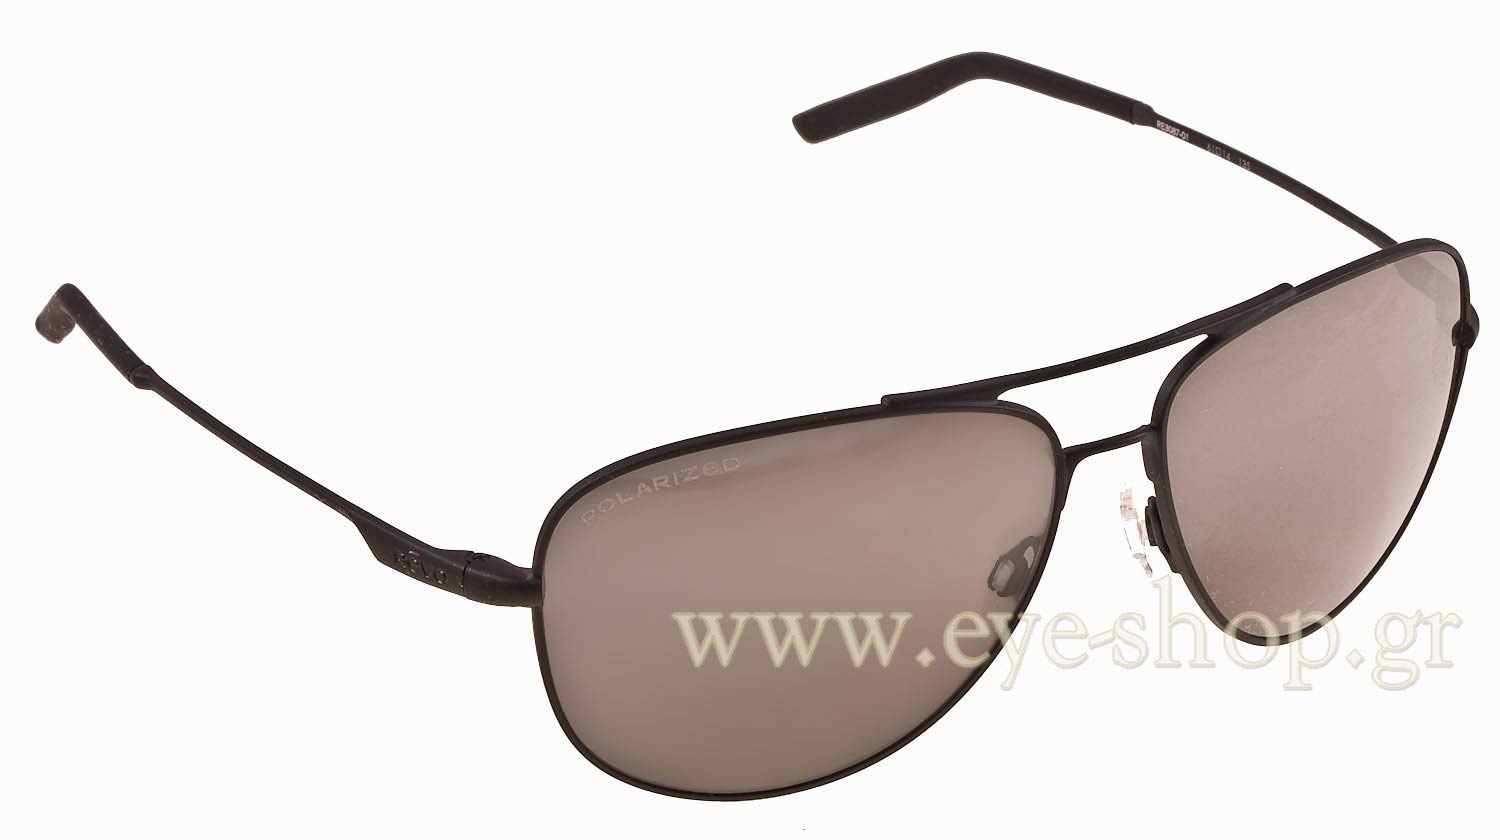 78e61cd8a05 Revo Windspeed Re 3087 Polarized Aviator Sunglasses